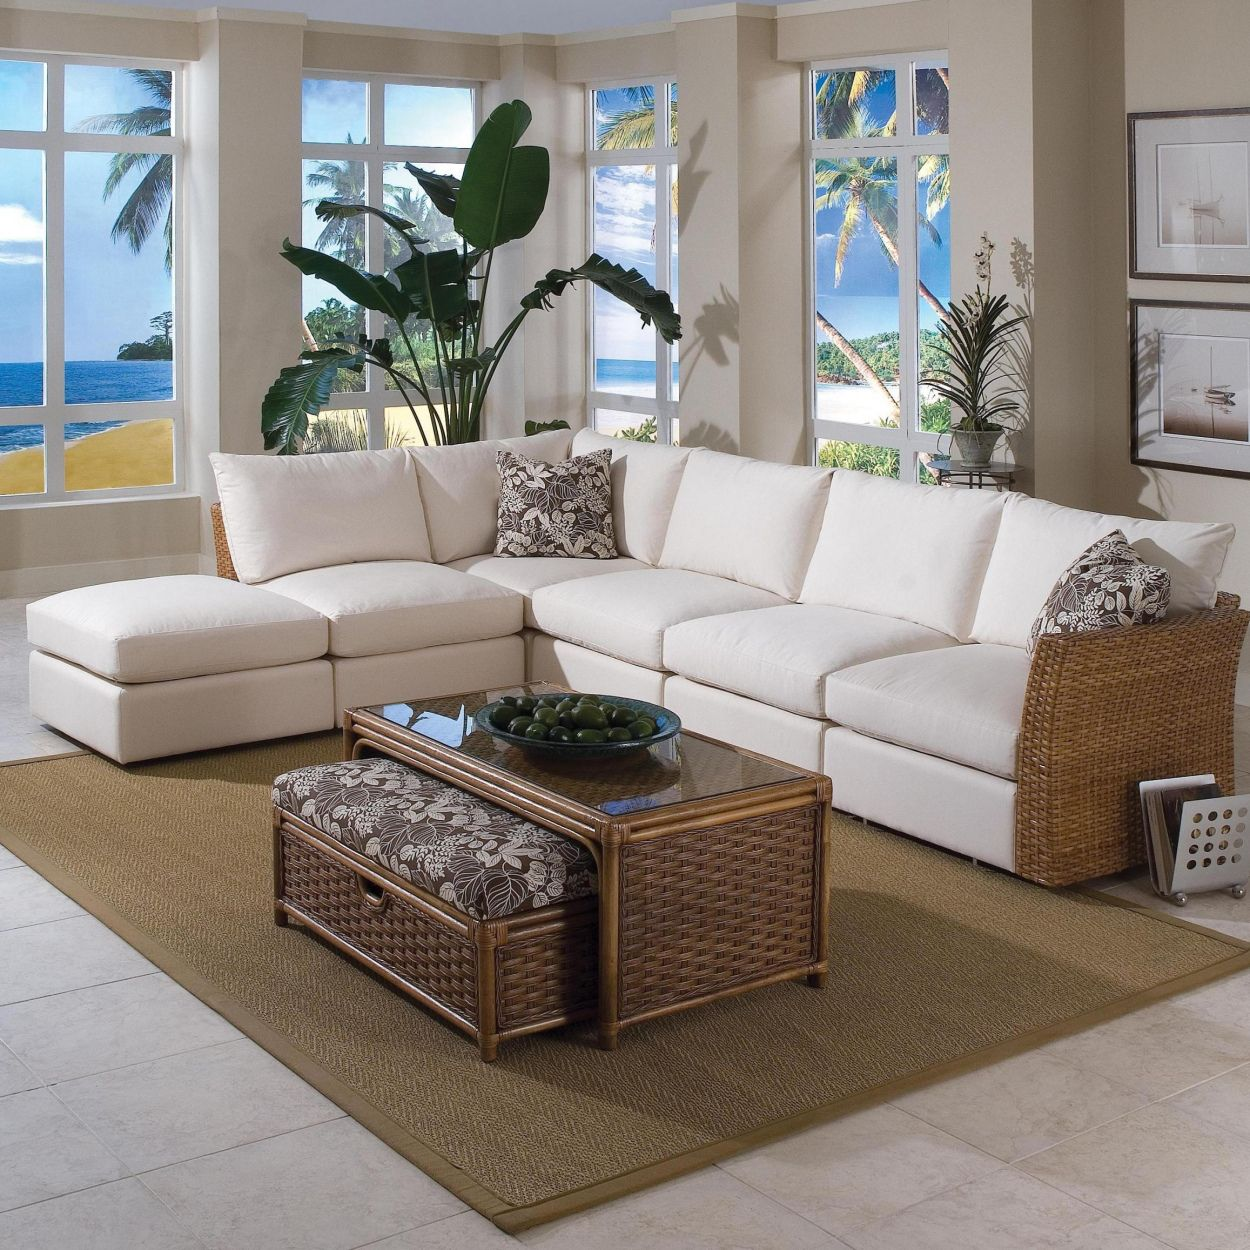 Grand Furniture Virginia Beach Blvd   Best Furniture Gallery Check More At  Http://